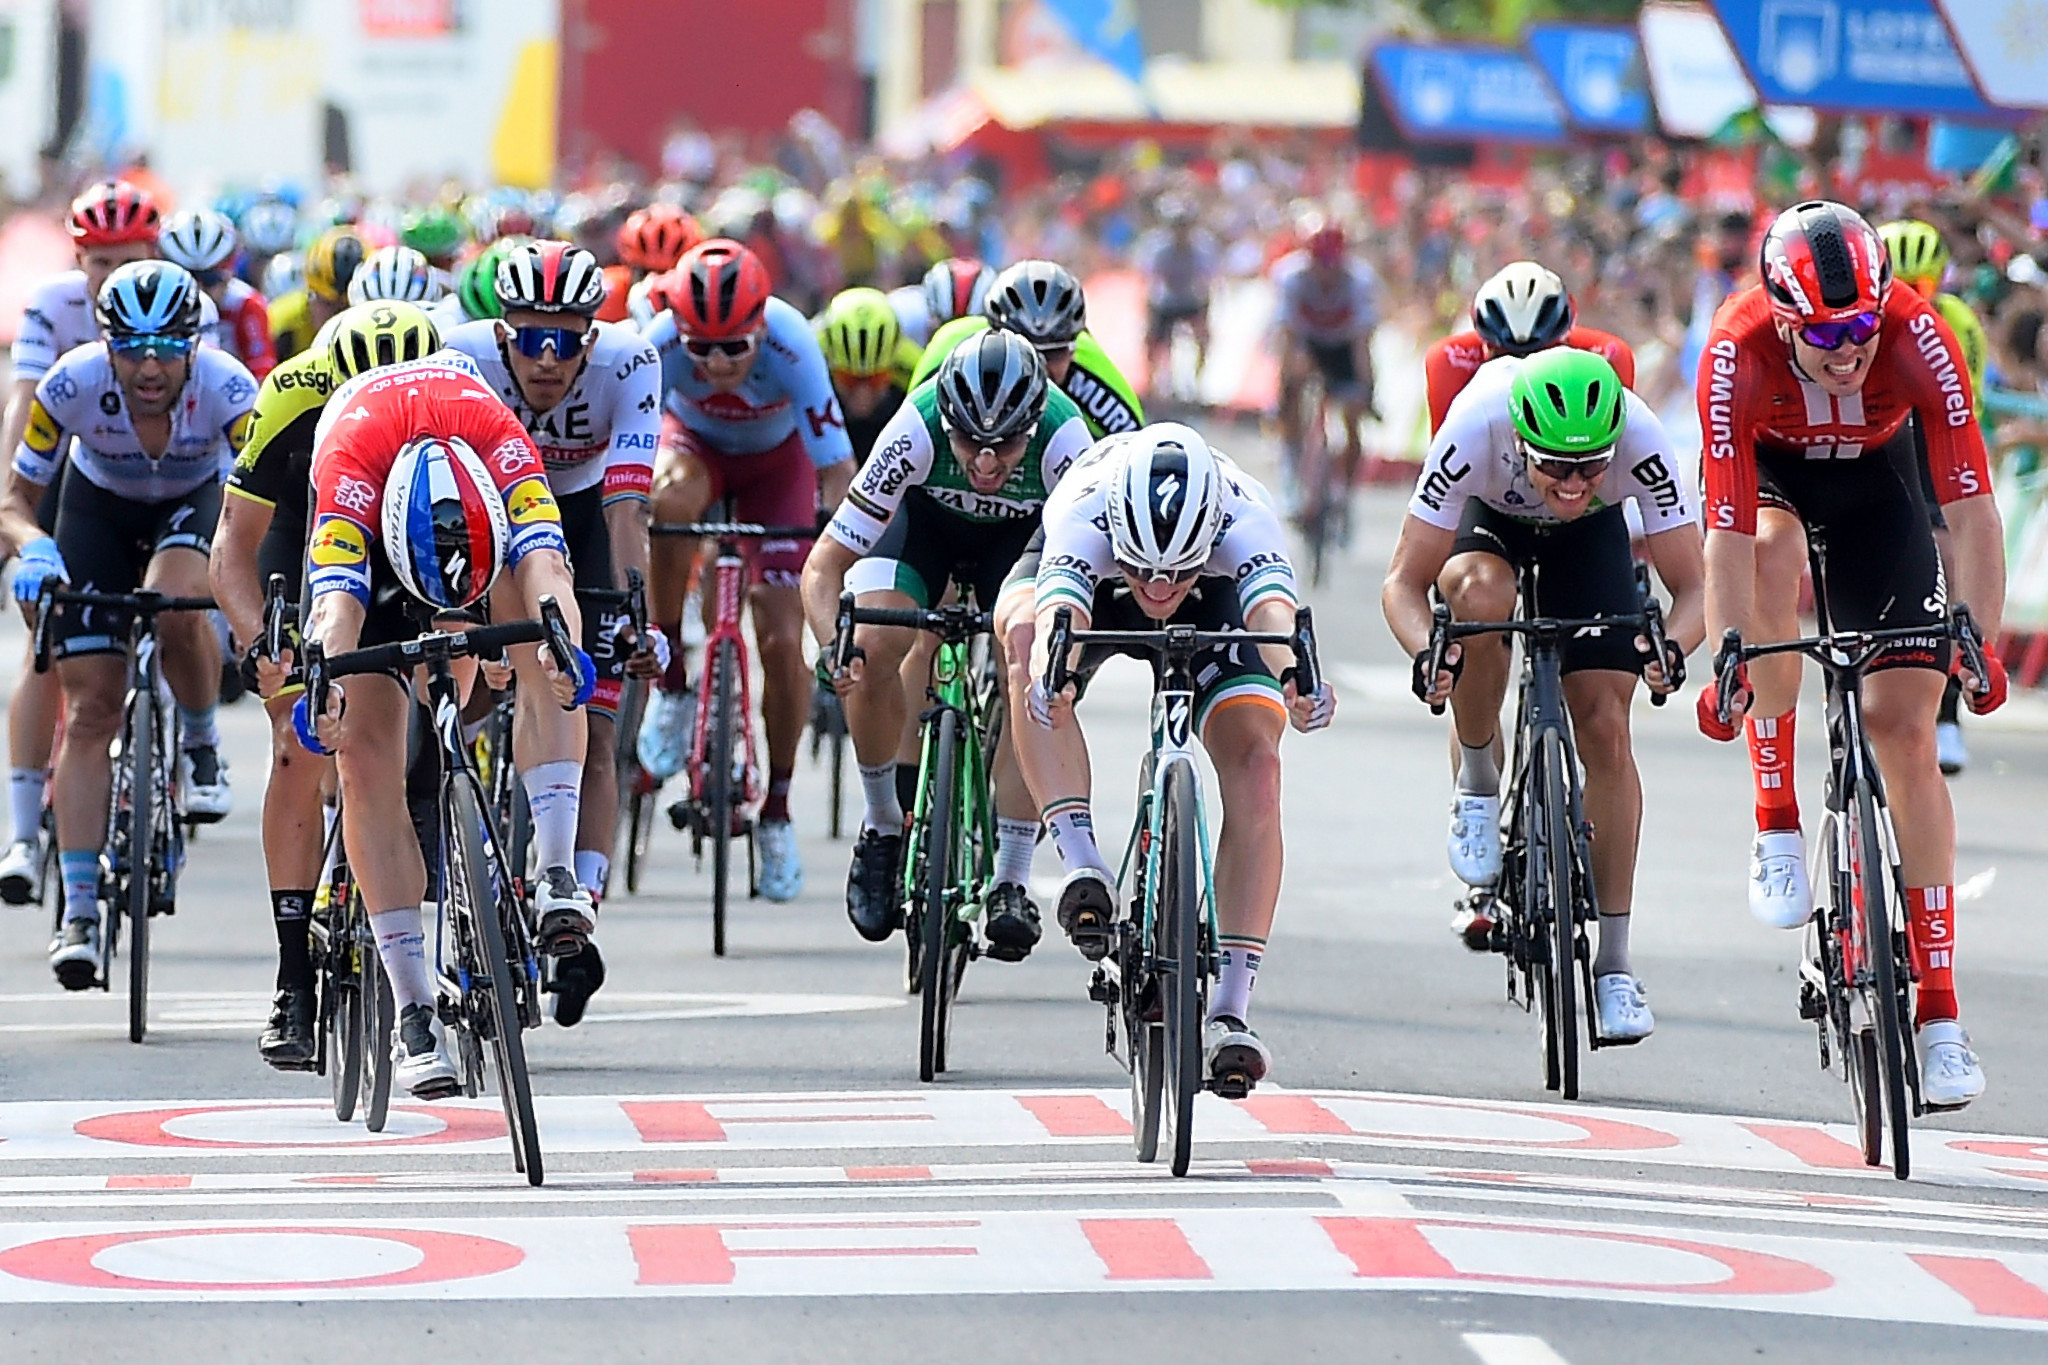 Jakobsen earns narrow victory to win first Grand Tour stage at Vuelta a España